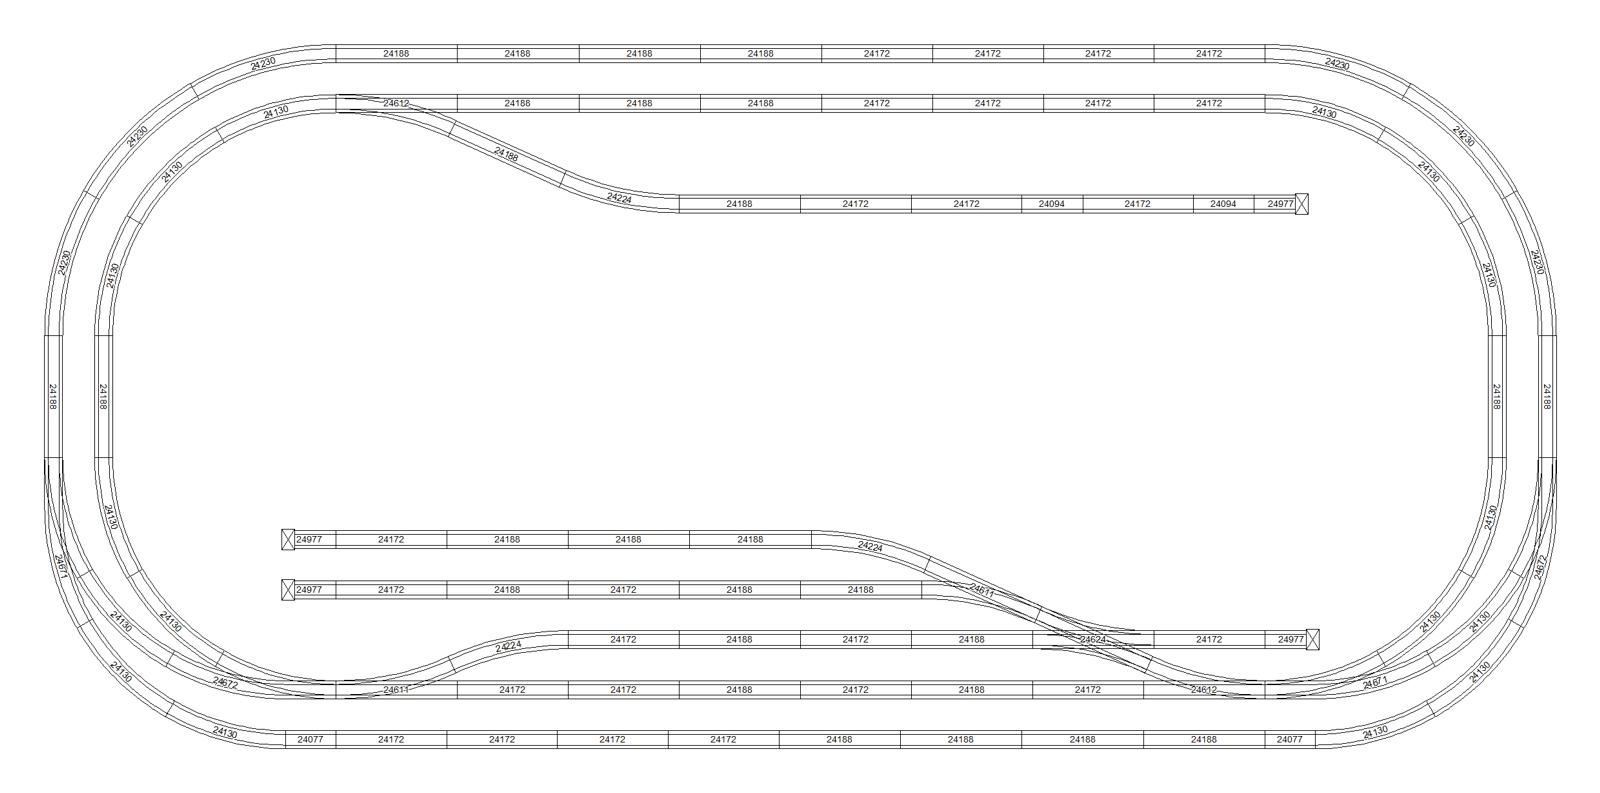 Marklin Ho C Track Plan 240x120 For Train Layout Wiring Diagrams Size